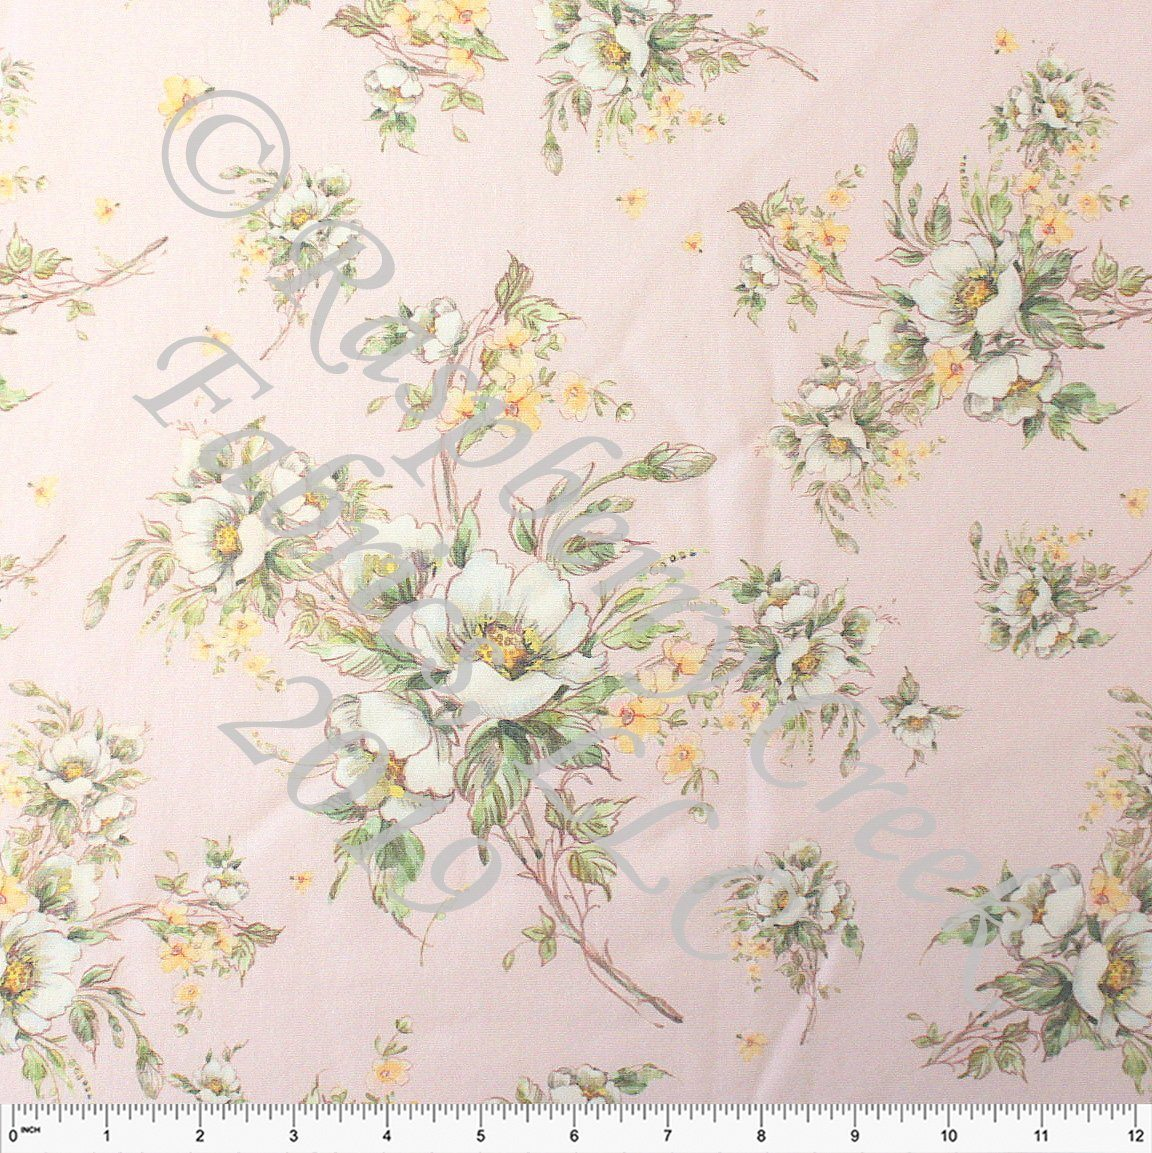 Pale Pink Cream Yellow and Green Floral French Terry Fleece Sweatshirt Knit Fabric, CLUB Fabrics - Raspberry Creek Fabrics